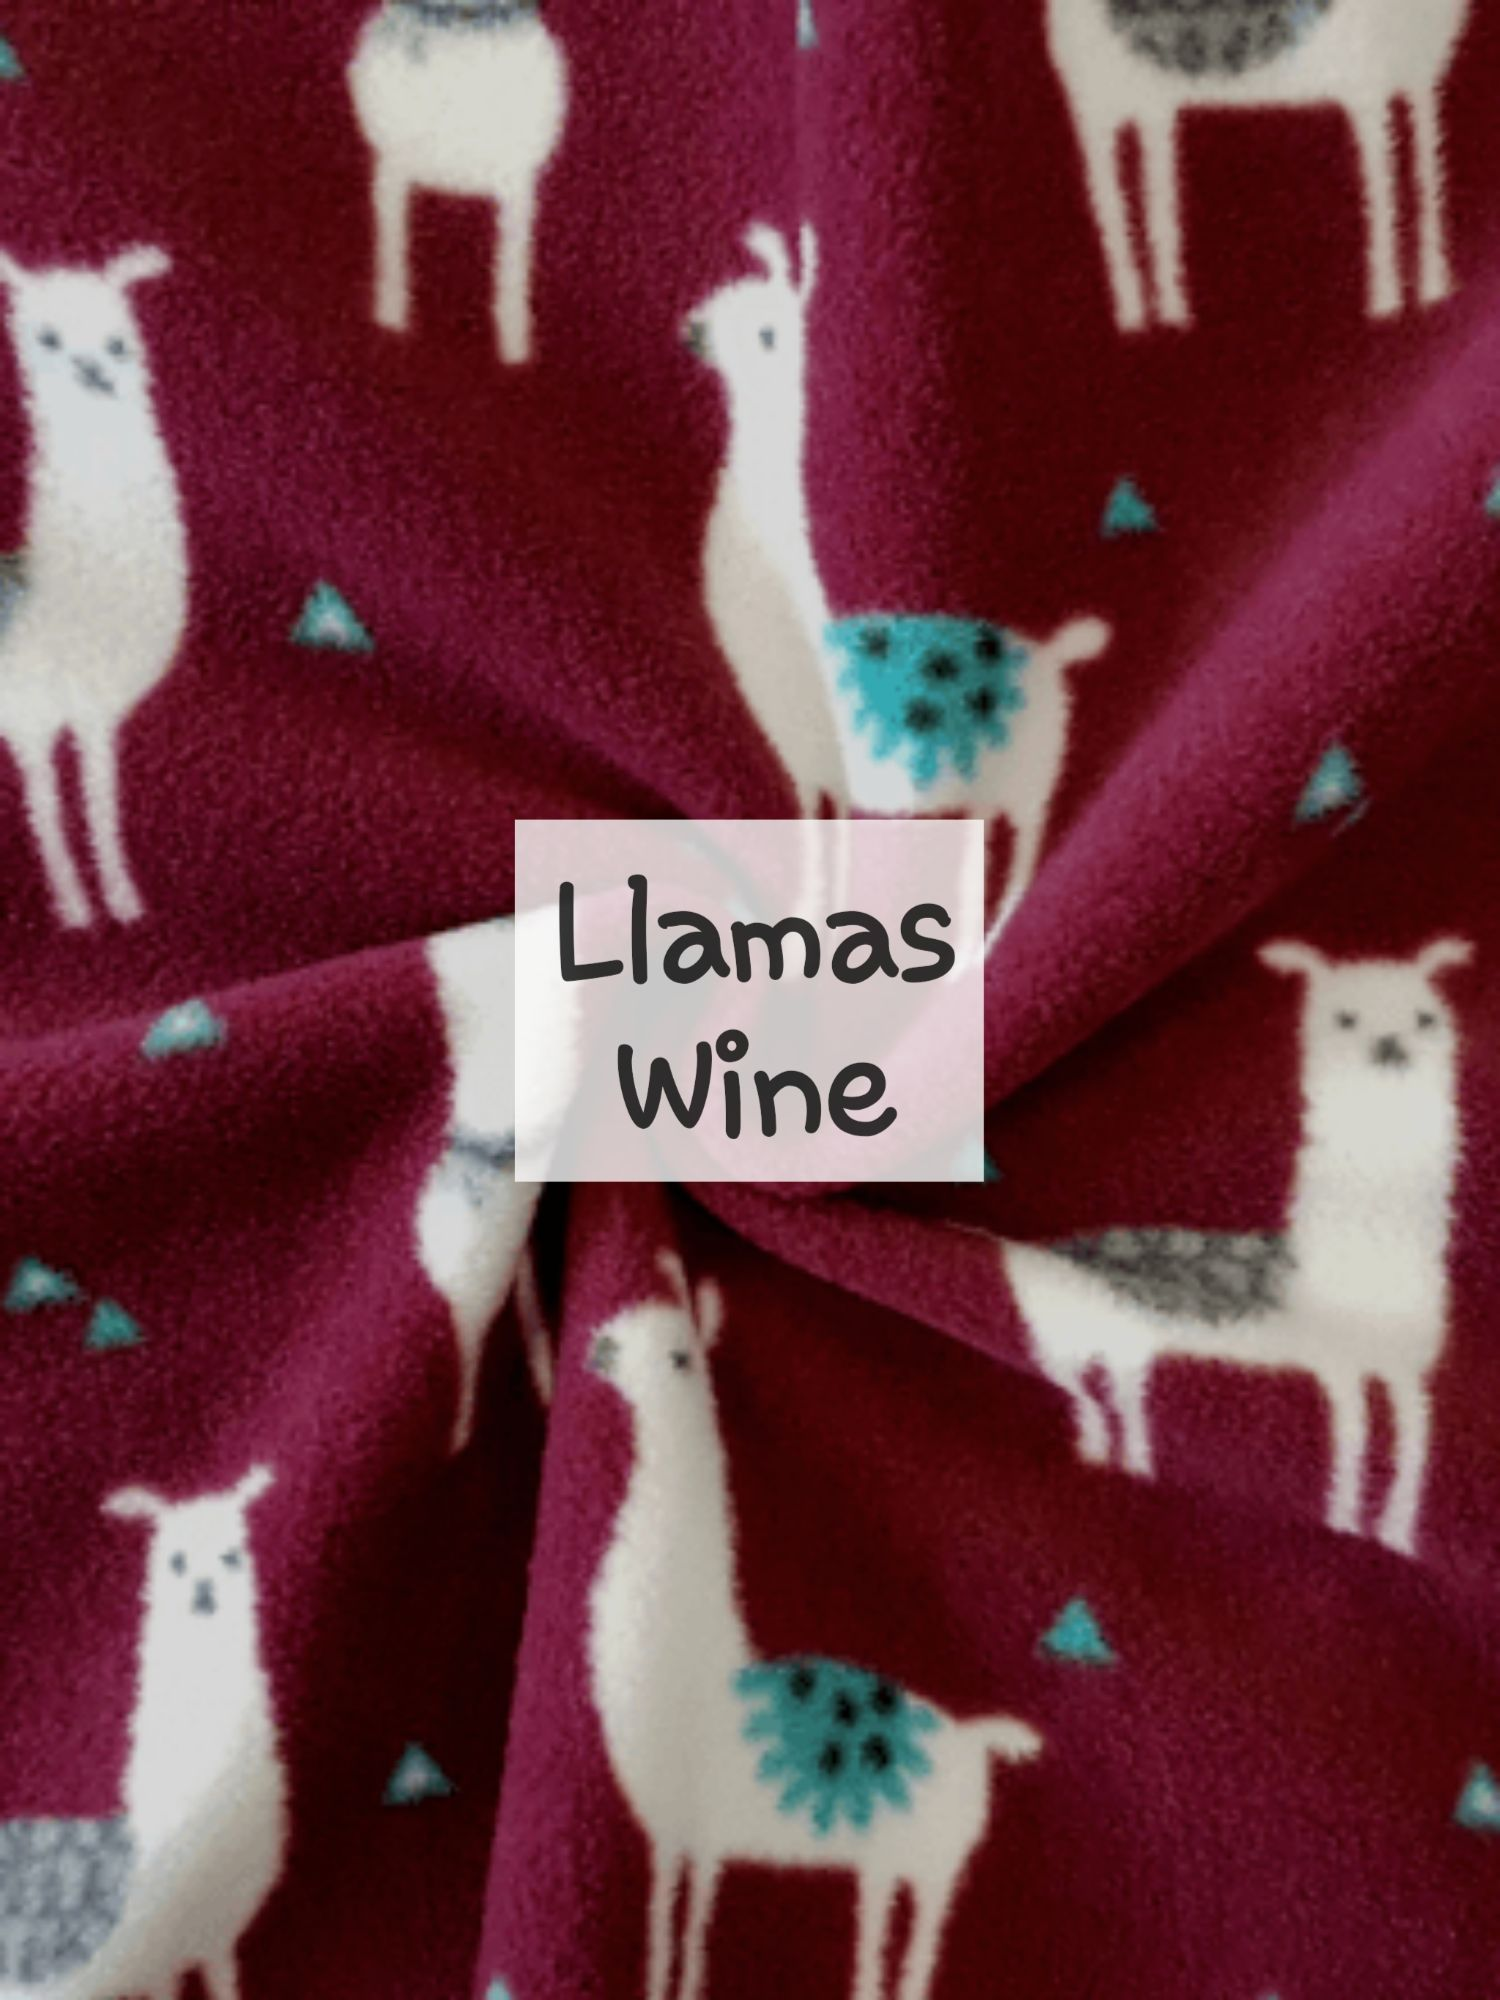 Llamas Wine Fleece